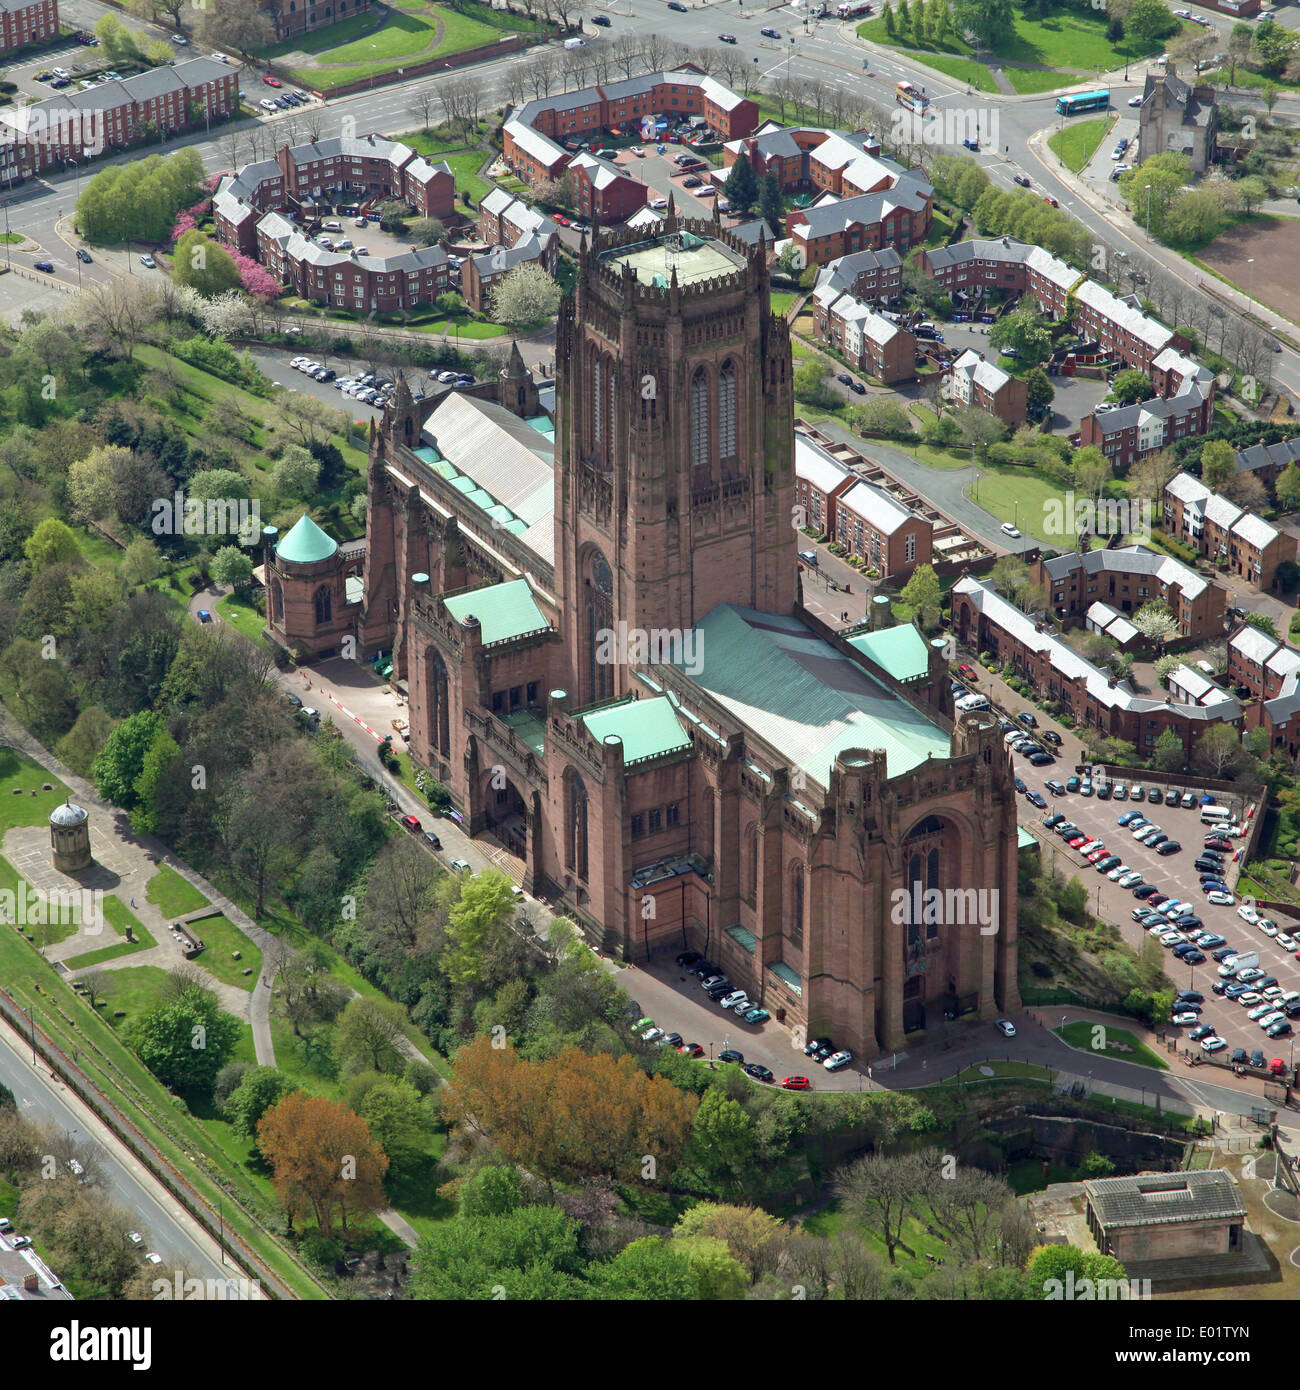 aerial view of the Anglican Cathedral in Liverpool - Stock Image